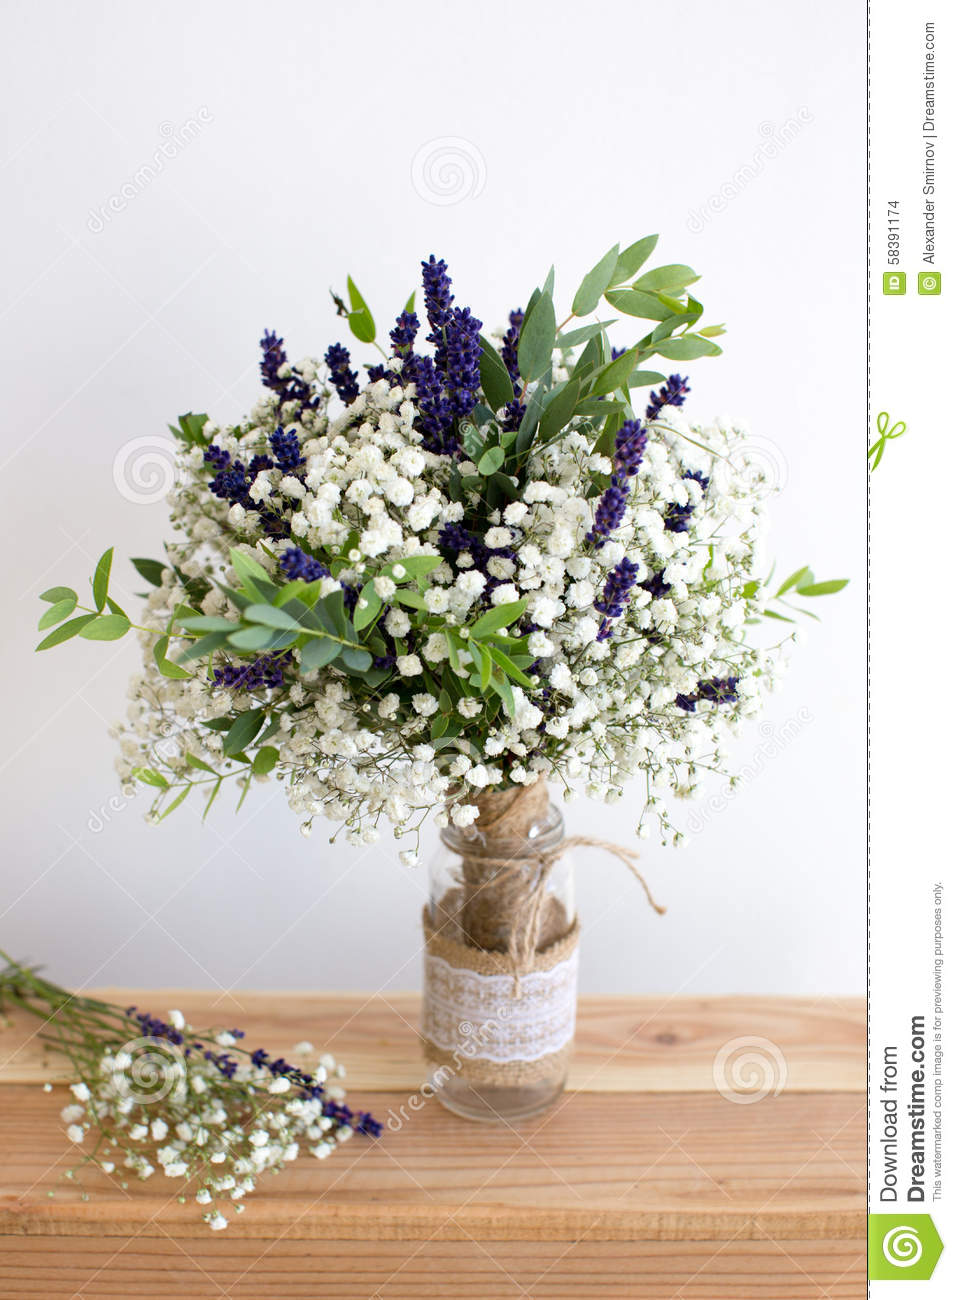 Bouquet of fragrant herbs fennel and parsley on a